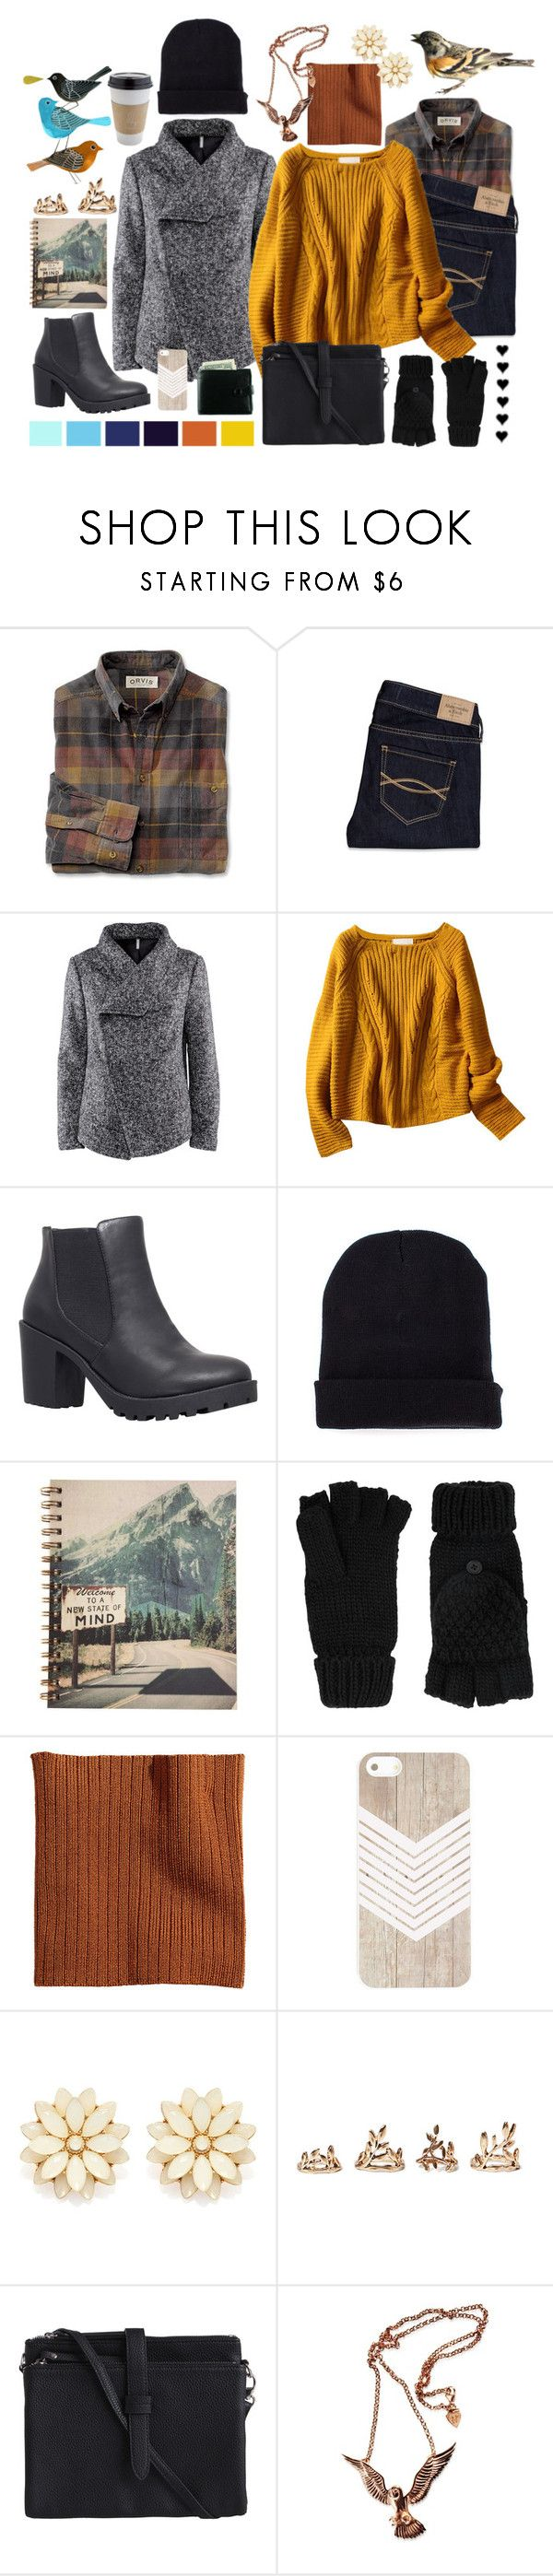 """""""Warm Winter"""" by pantherinae on Polyvore featuring Abercrombie & Fitch, H&M, Carvela, Missguided, Seed Design, Accessorize, OUTRAGE, Forever 21, Pieces and Hjälte Jewellery"""